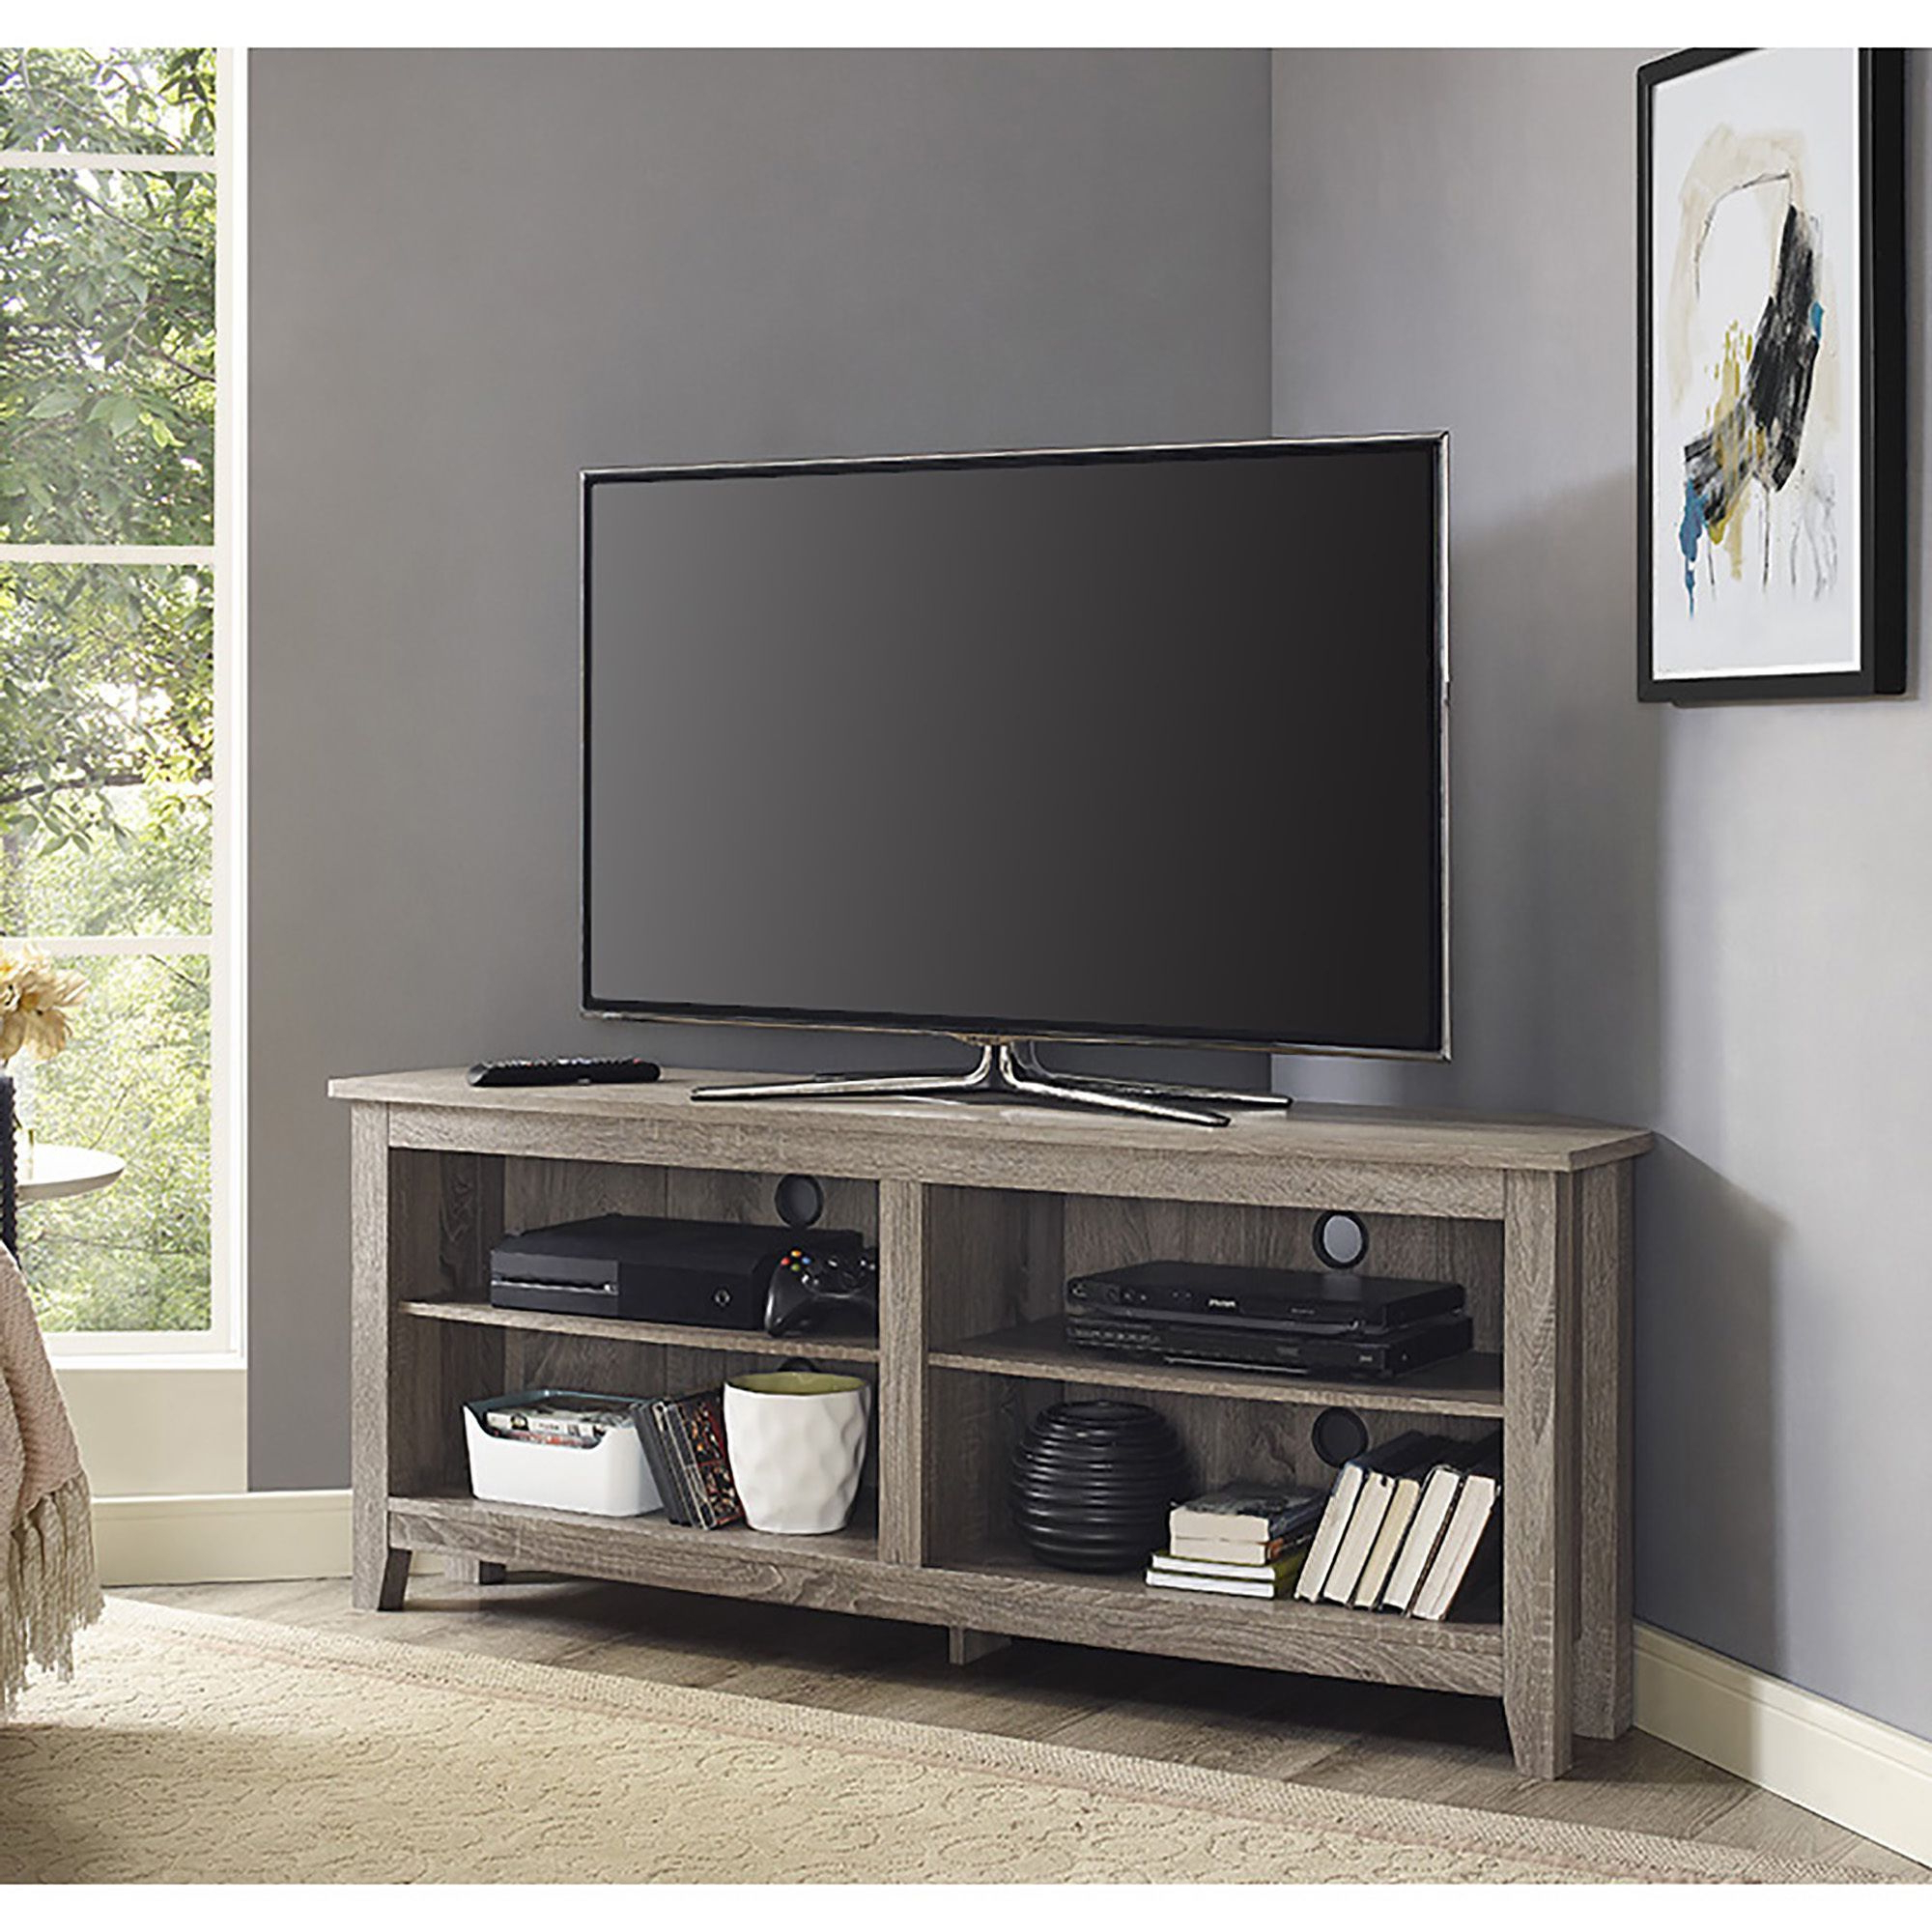 24 Inch Corner Tv Stands Intended For Well Known Display Your Tv In Style With This Corner Wood Media Stand (View 5 of 20)